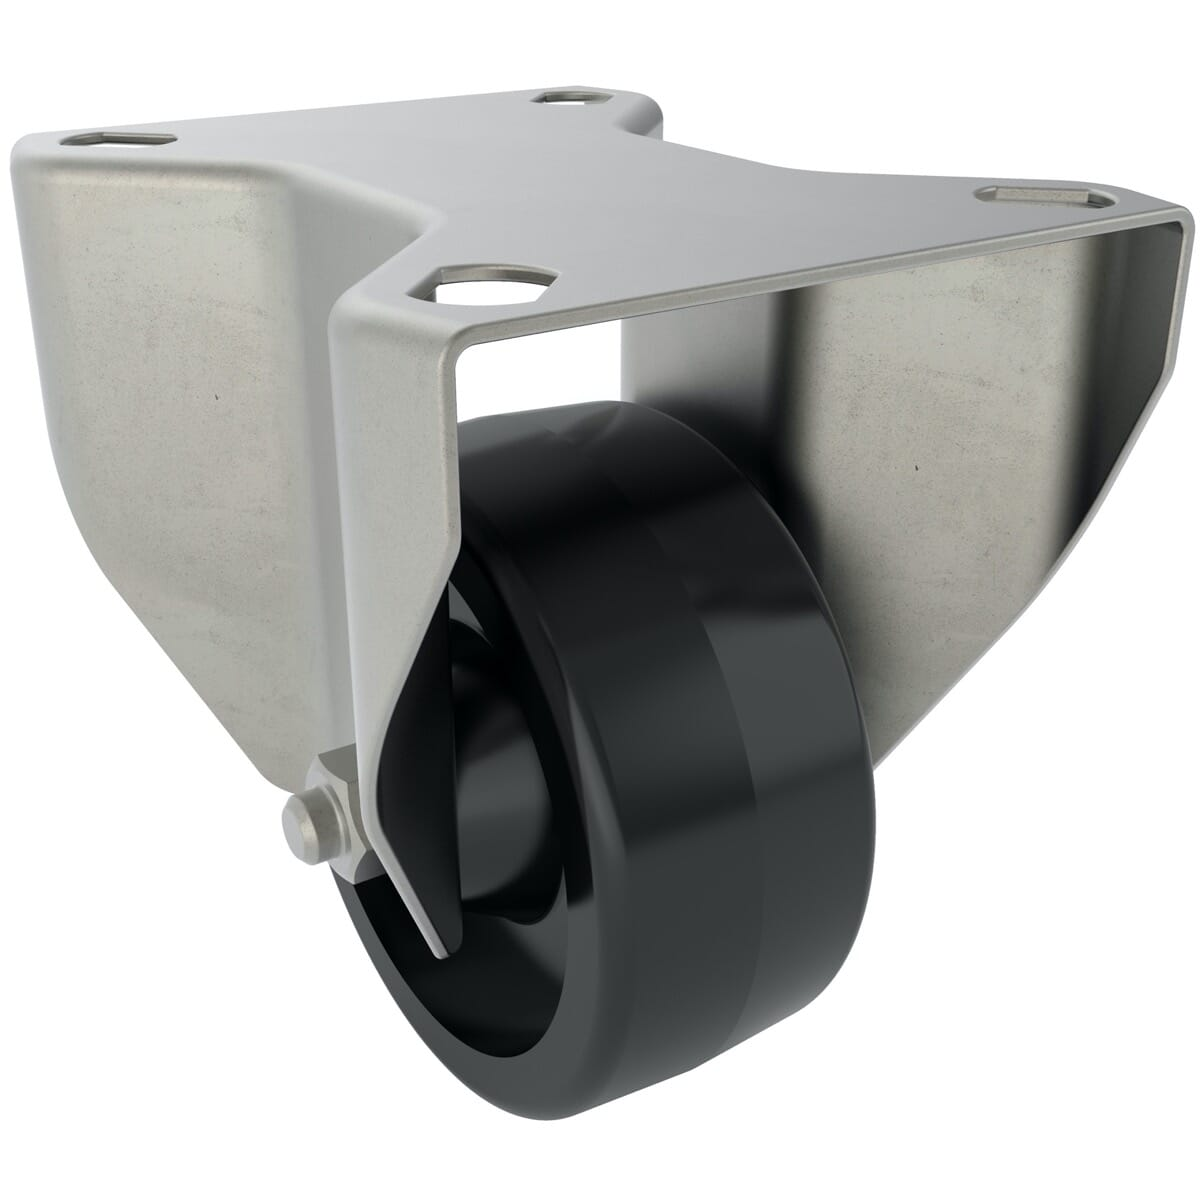 80mm x 45mm x 108mm x 9mm Industrial Castors With Fixed Plate - Stainless Steel Housing With Black Thermoplastic Wheel